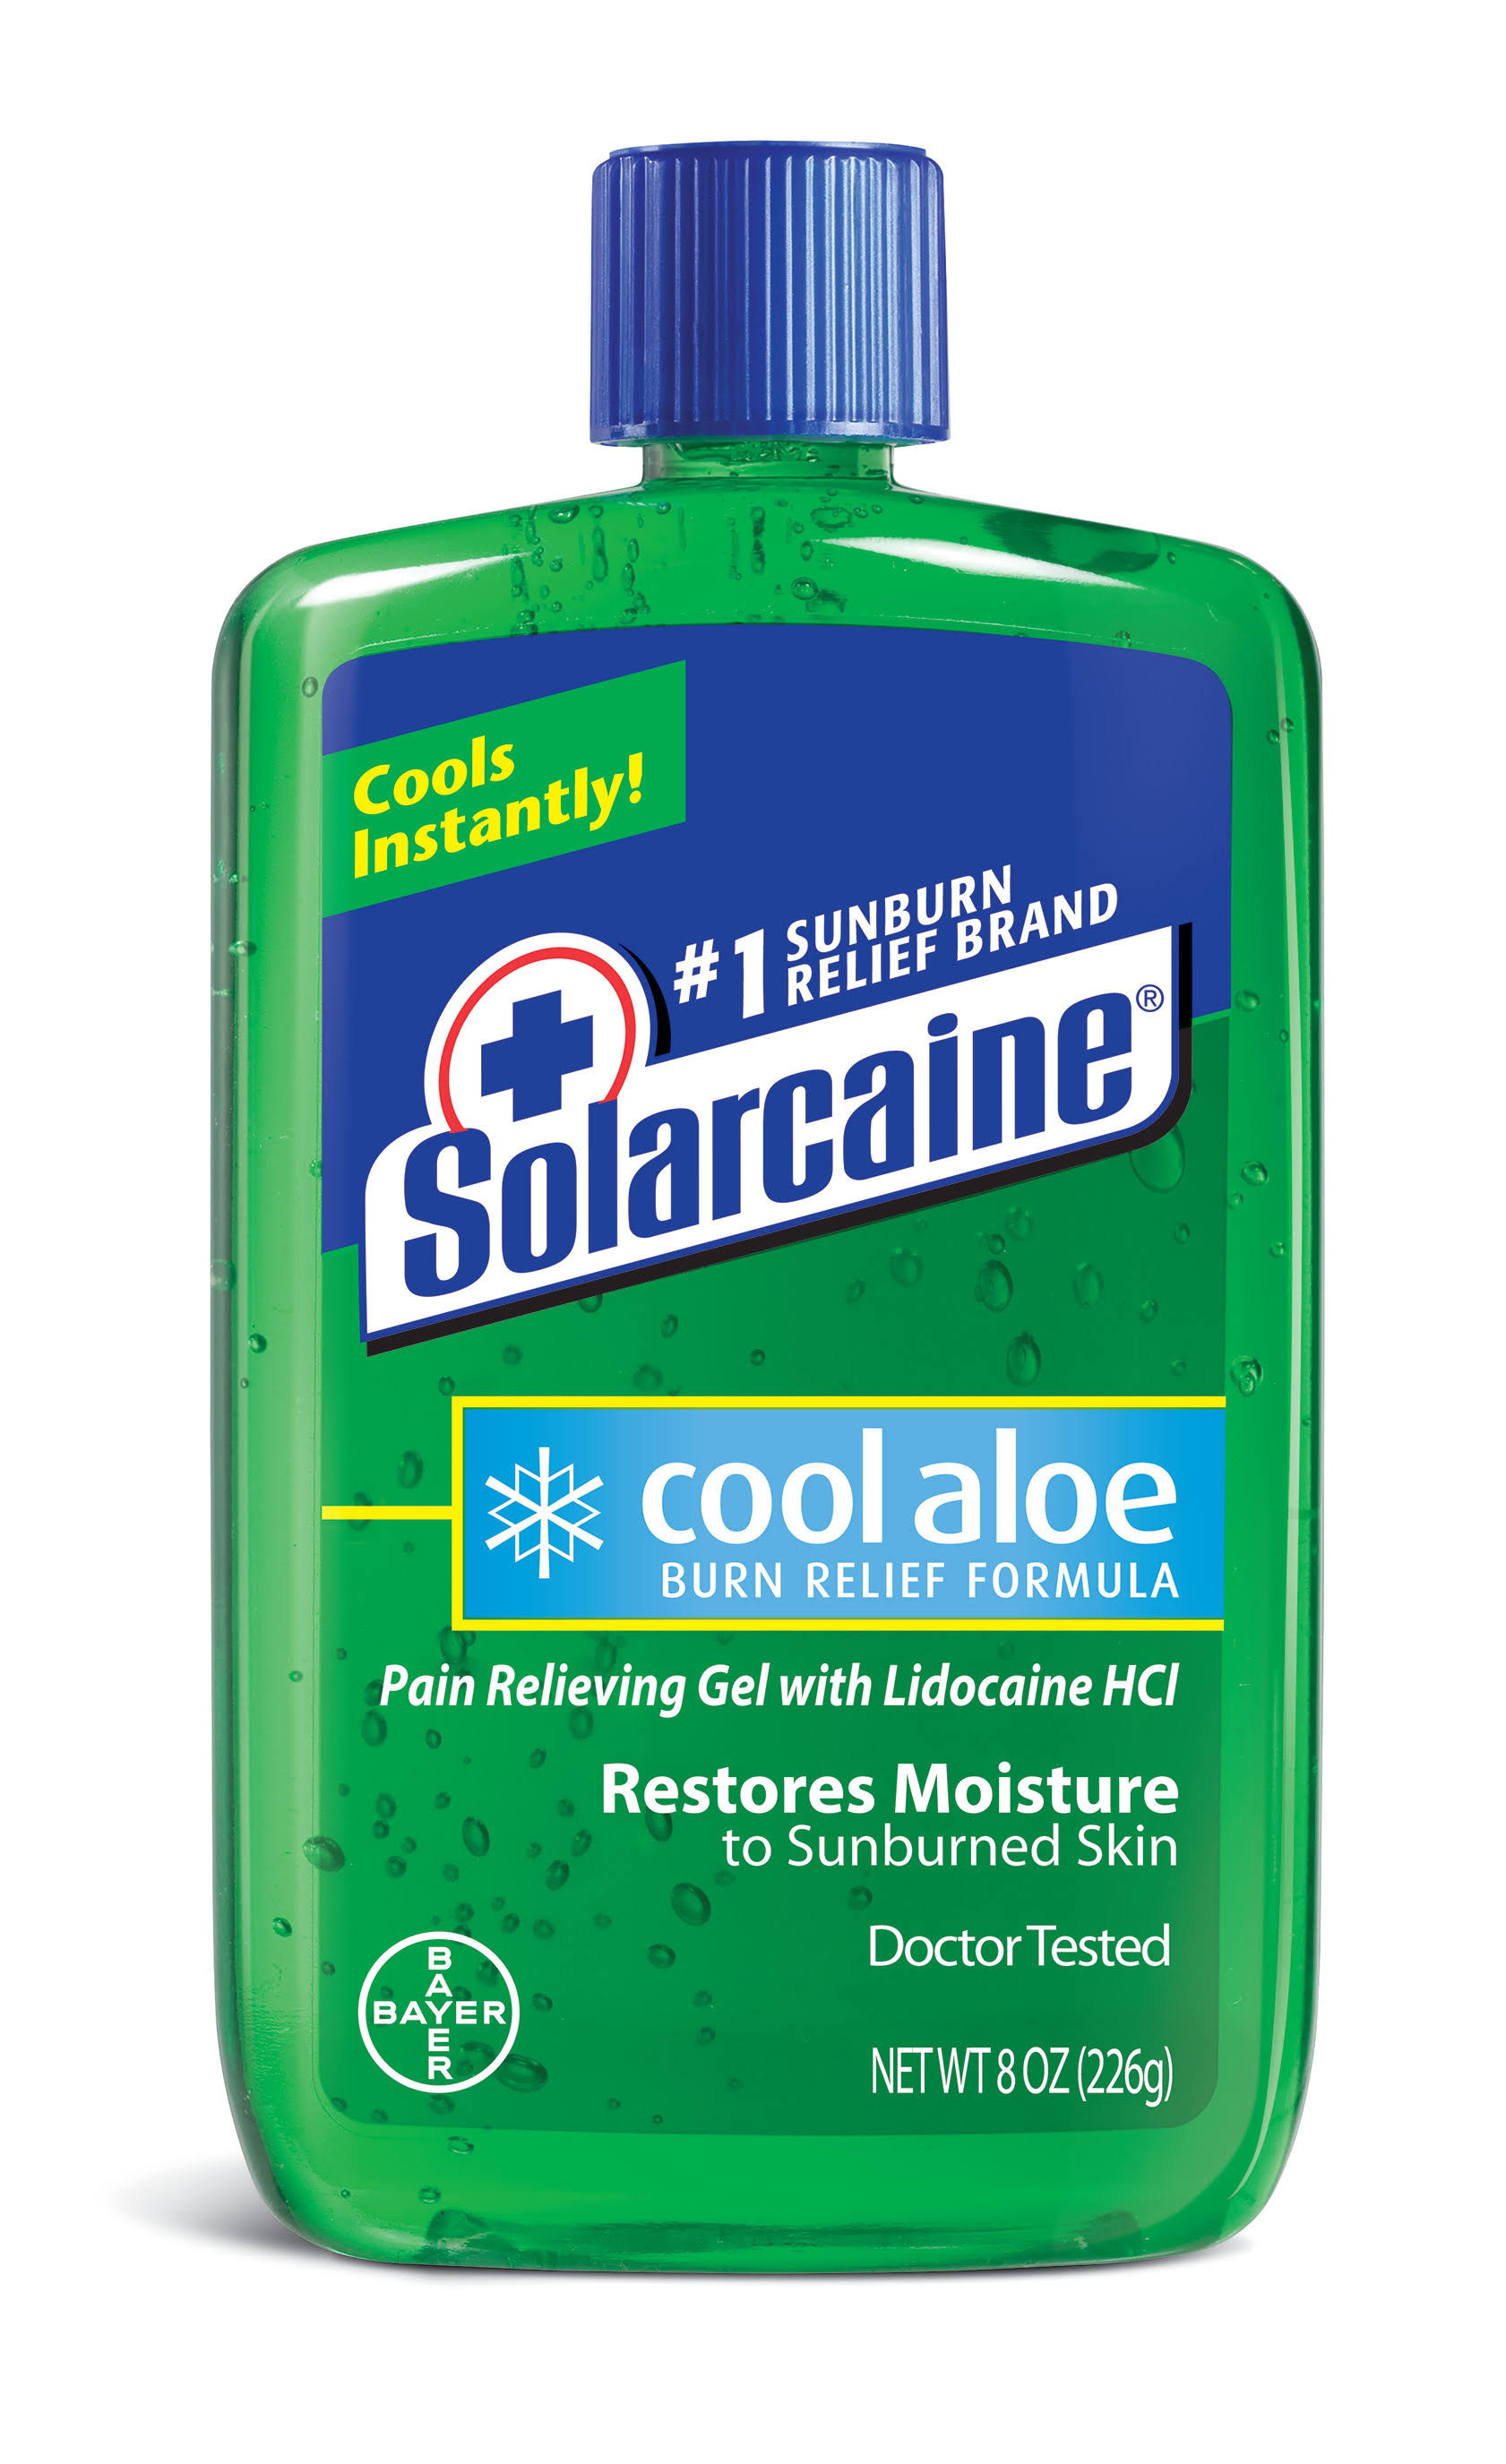 Bayer Solarcaine Cool Aloe Pain Relieving Gel - with Lidocaine HCl, 8oz